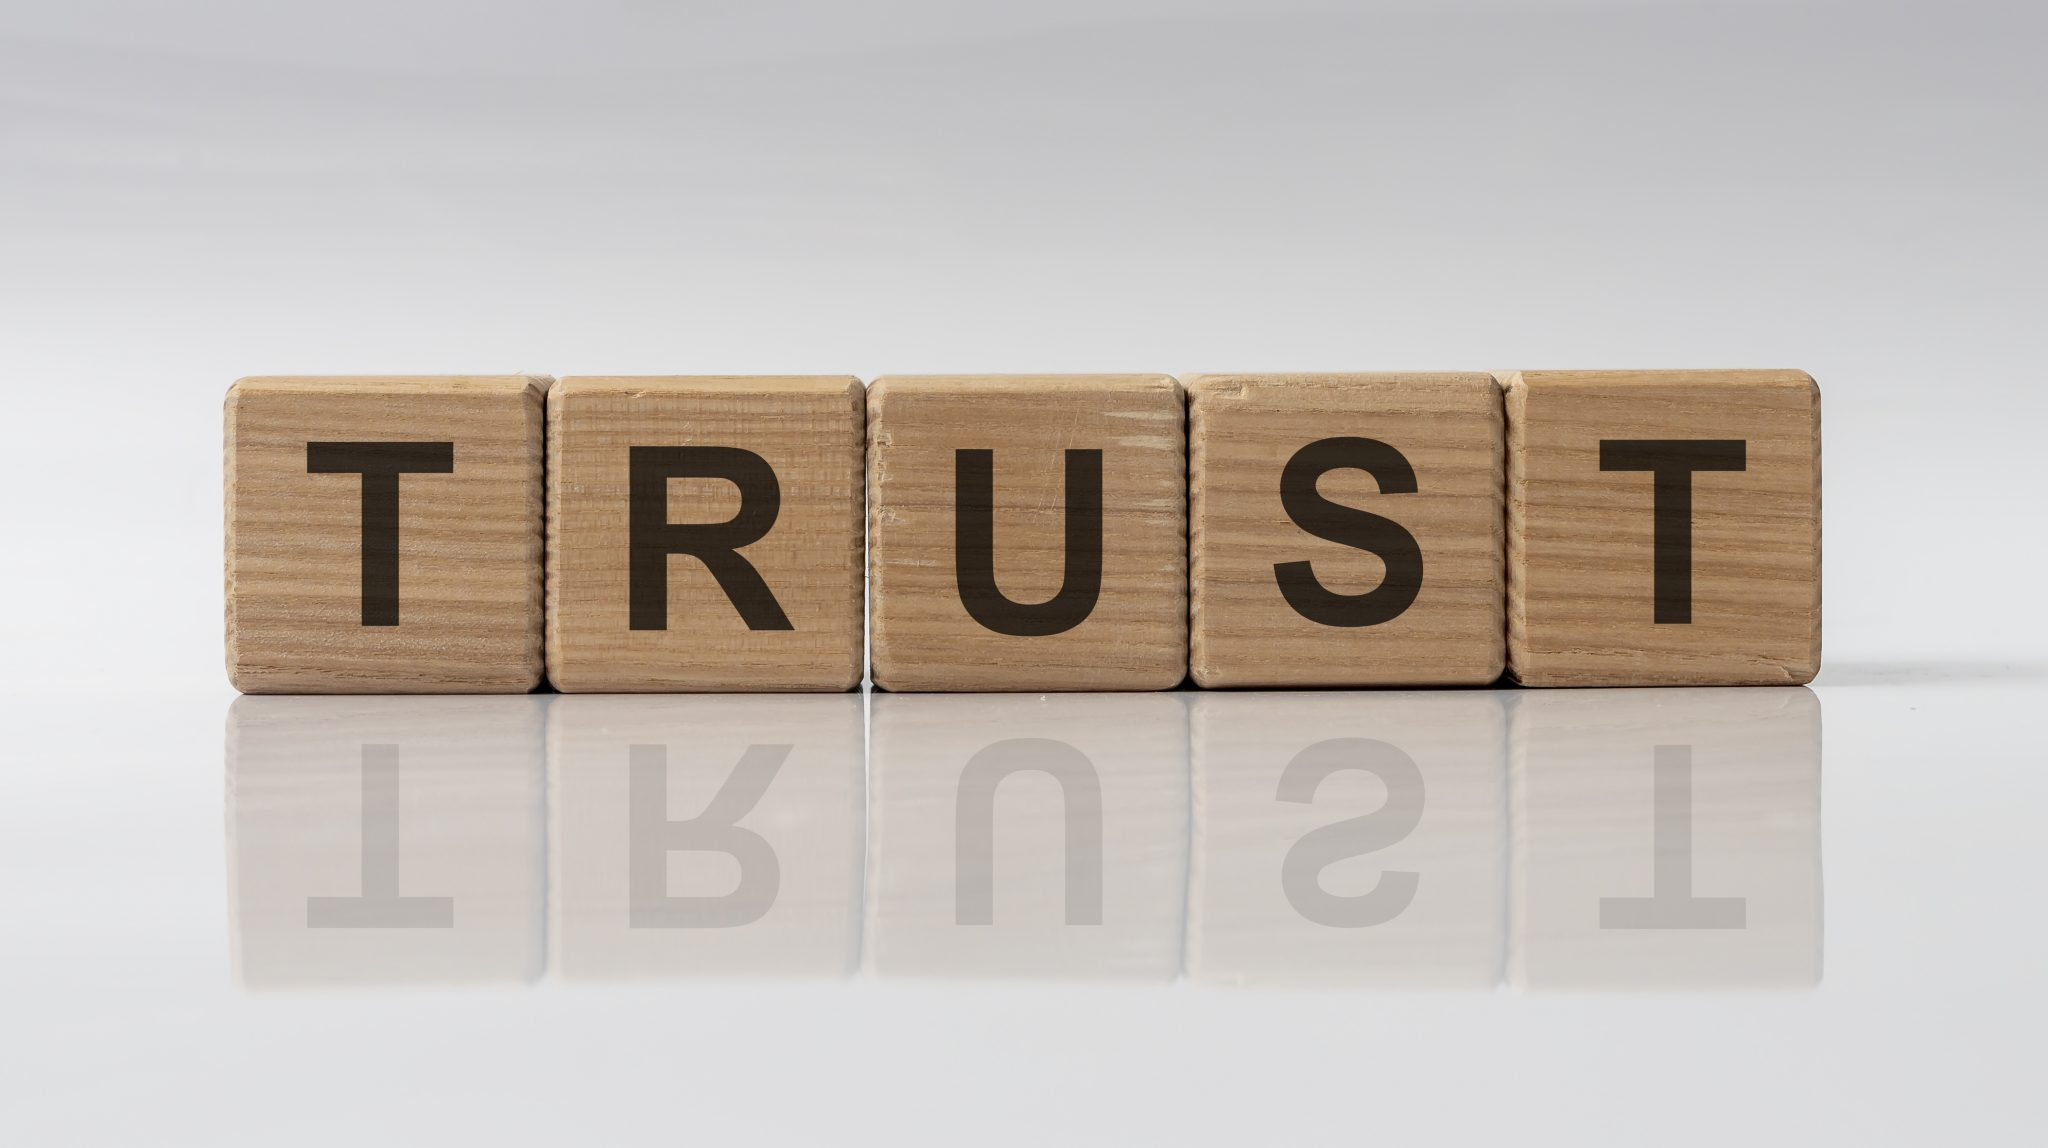 Hiring Digital Marketing Experts Requires You to Trust Us